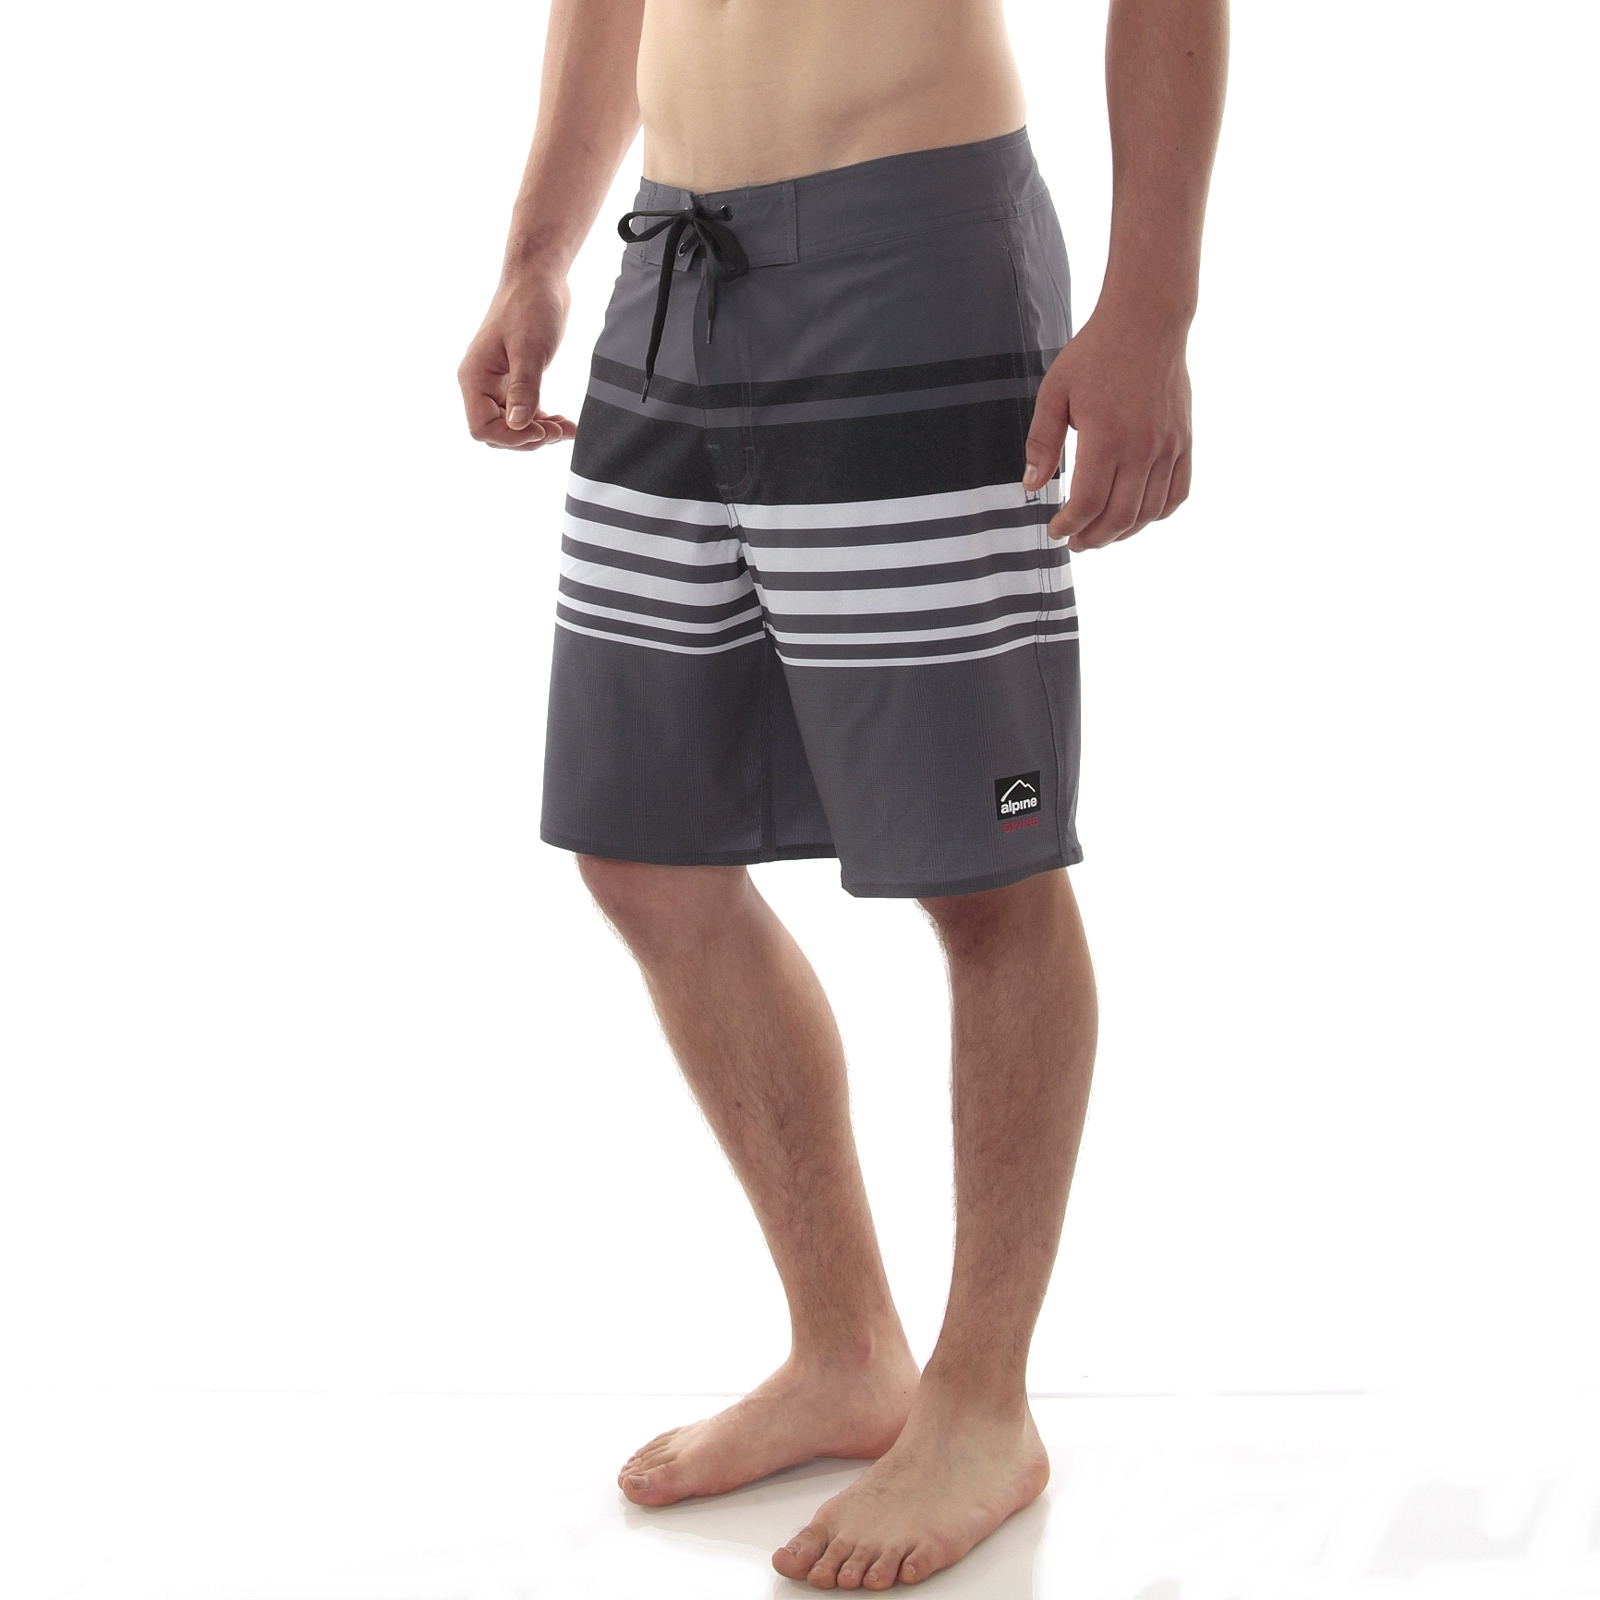 donhobo Men's Swim Trunks Board Shorts Beach Pants Swimming Waterproof Quick Dry Surfing Boardshorts. £ Prime. 5 out of 5 stars 2.